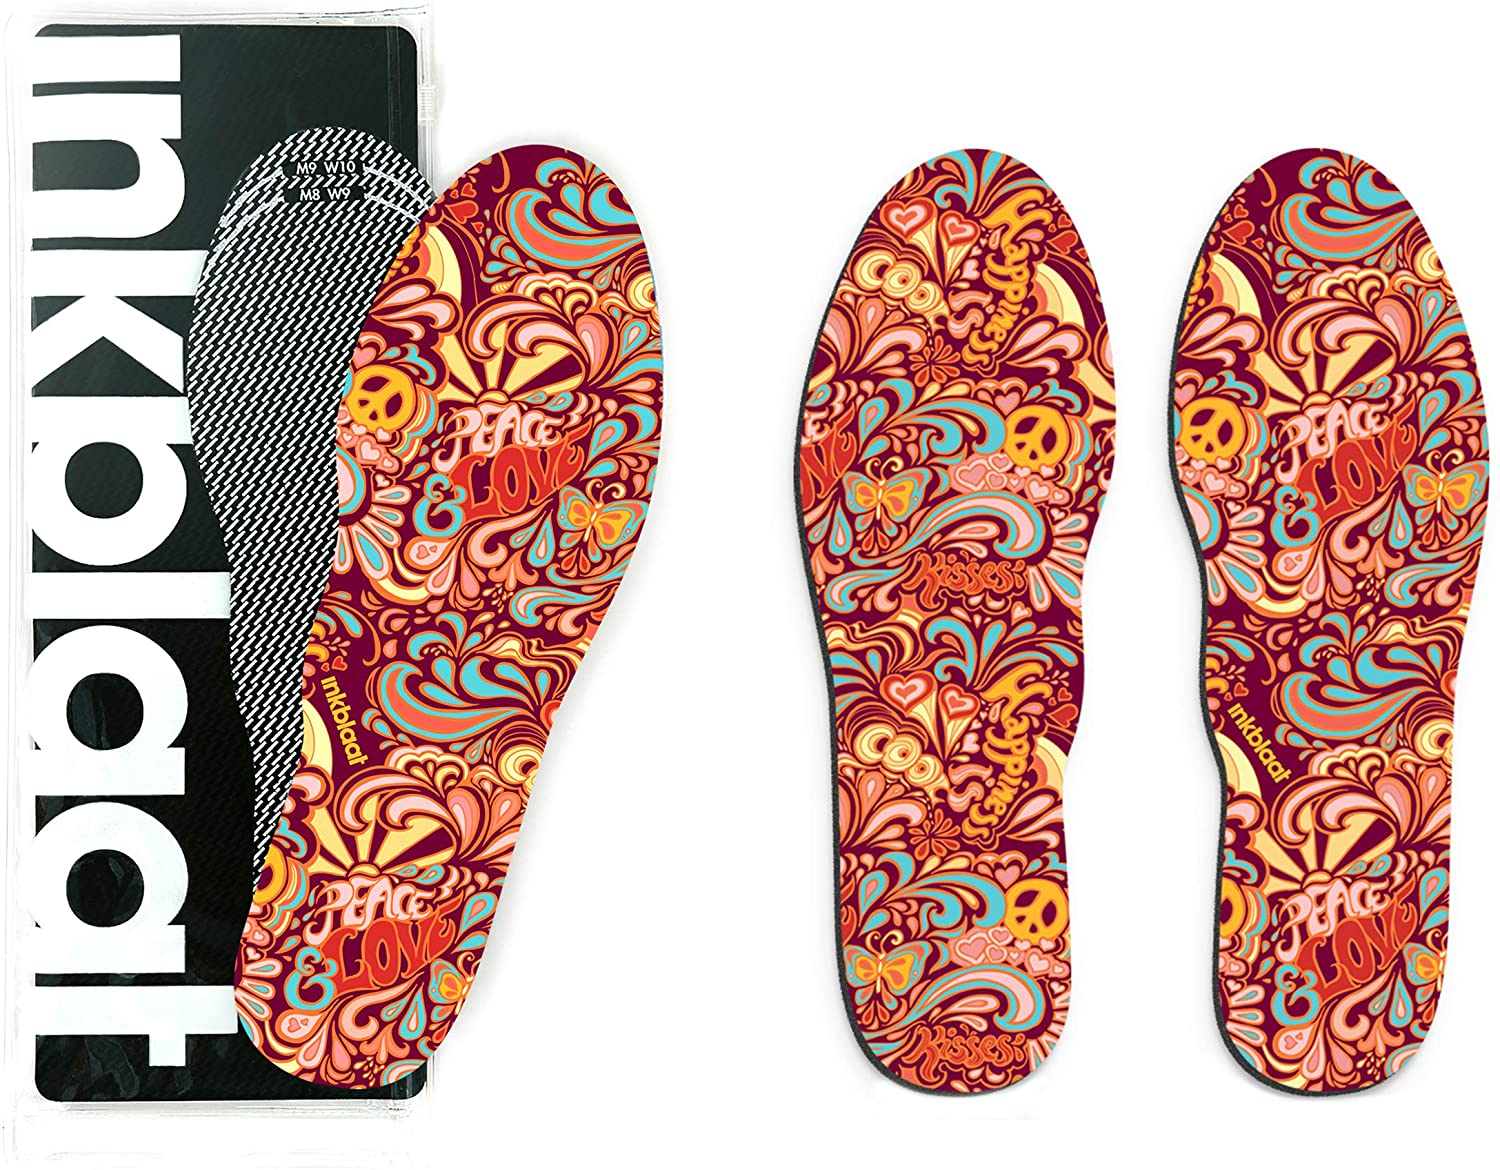 Inkblaat Odor Fighting Insoles – 24 Designs - Quirky, Fashion, Eco-Friendly Shoe Inserts (Small, Save The Whales)